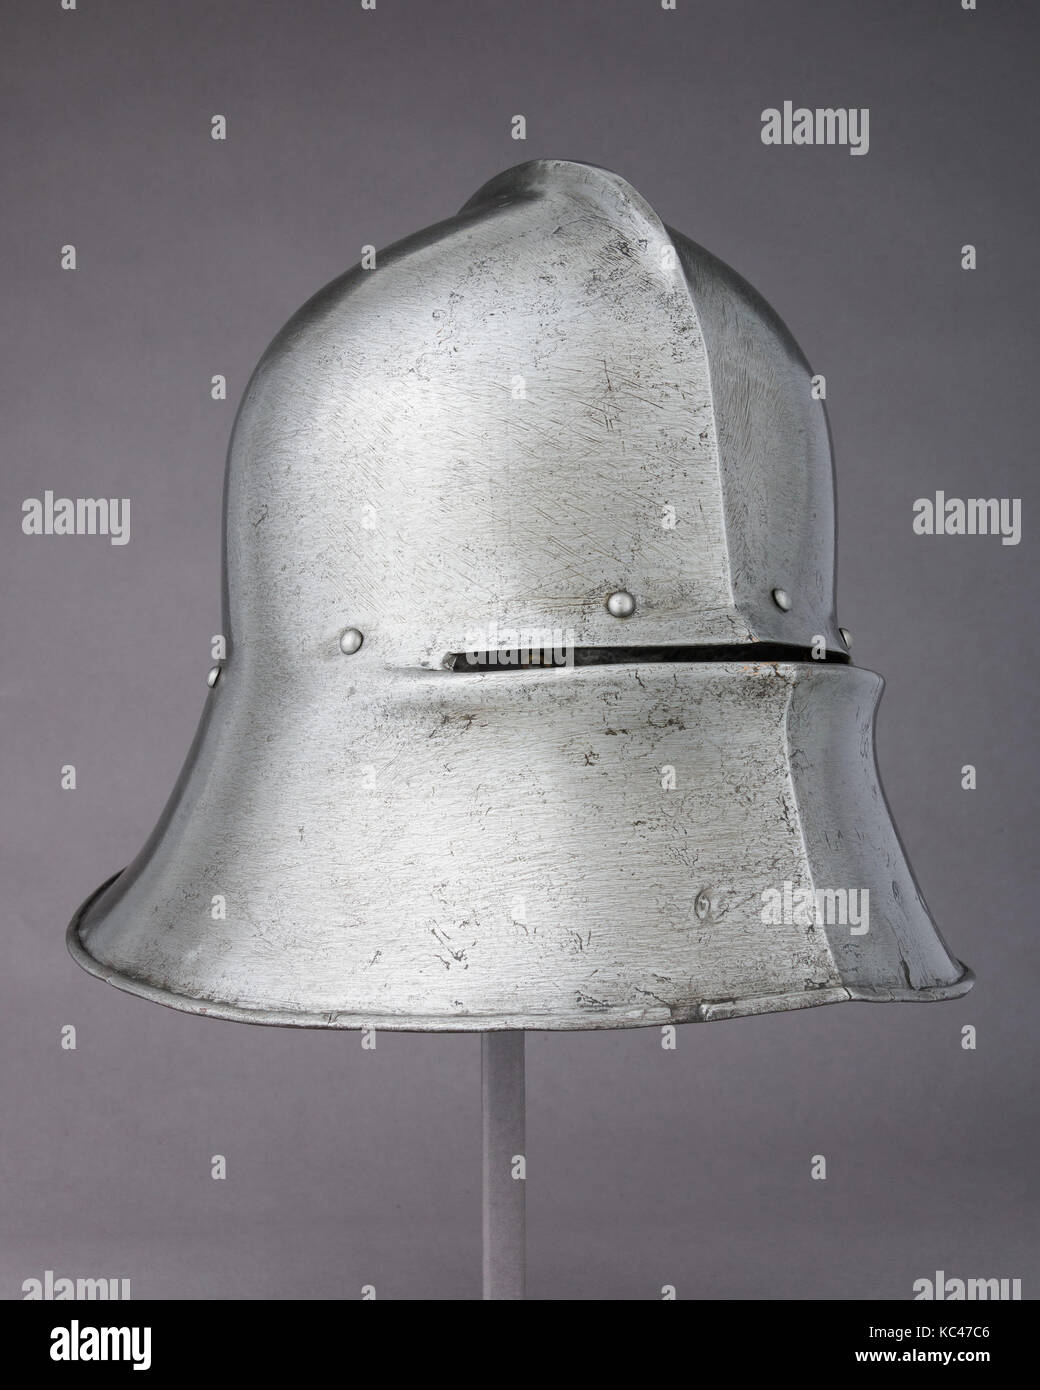 Sallet and Bevor, 1480, German, Steel, copper alloy, leather, Sallet (a); H. 10 1/4 in. (26 cm); W. 11 1/4 in. (28.6 - Stock Image